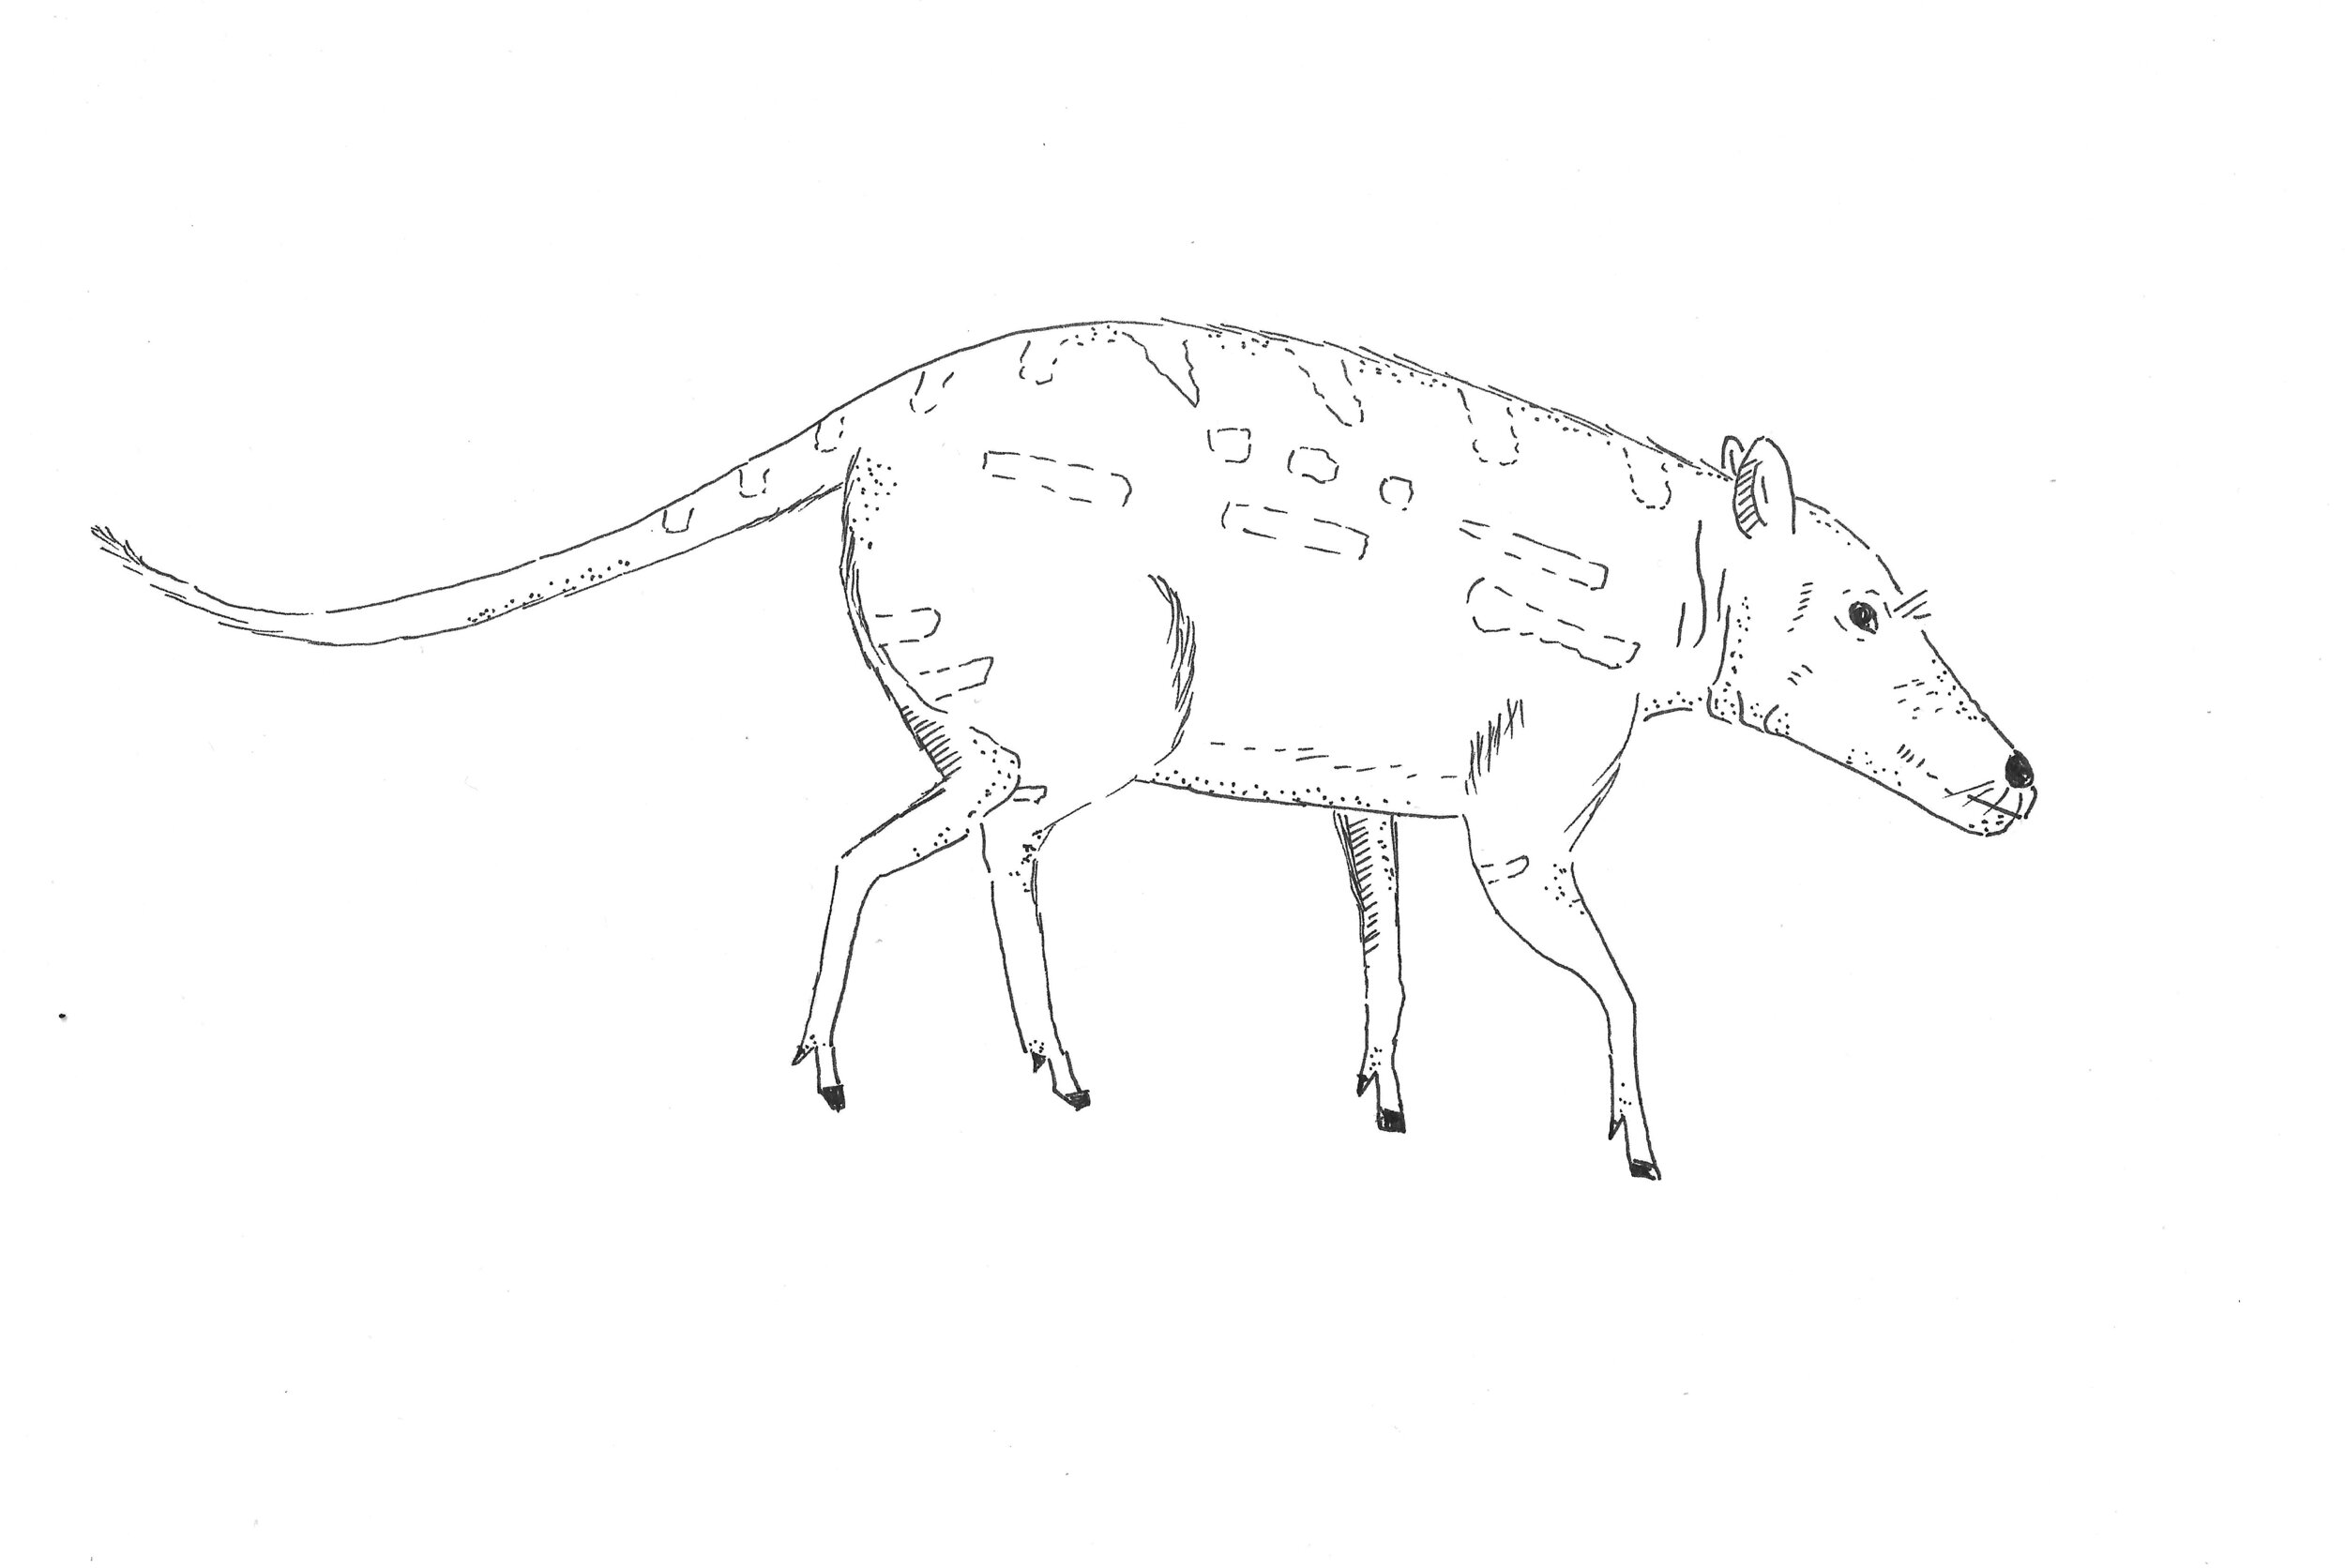 The deer-like, dog-nosed, hoofed terrestrial mammal Indohyus existed more than 50 million years ago in the early Eocene, an epoch of wet and balmy weather. What did it evolve into?